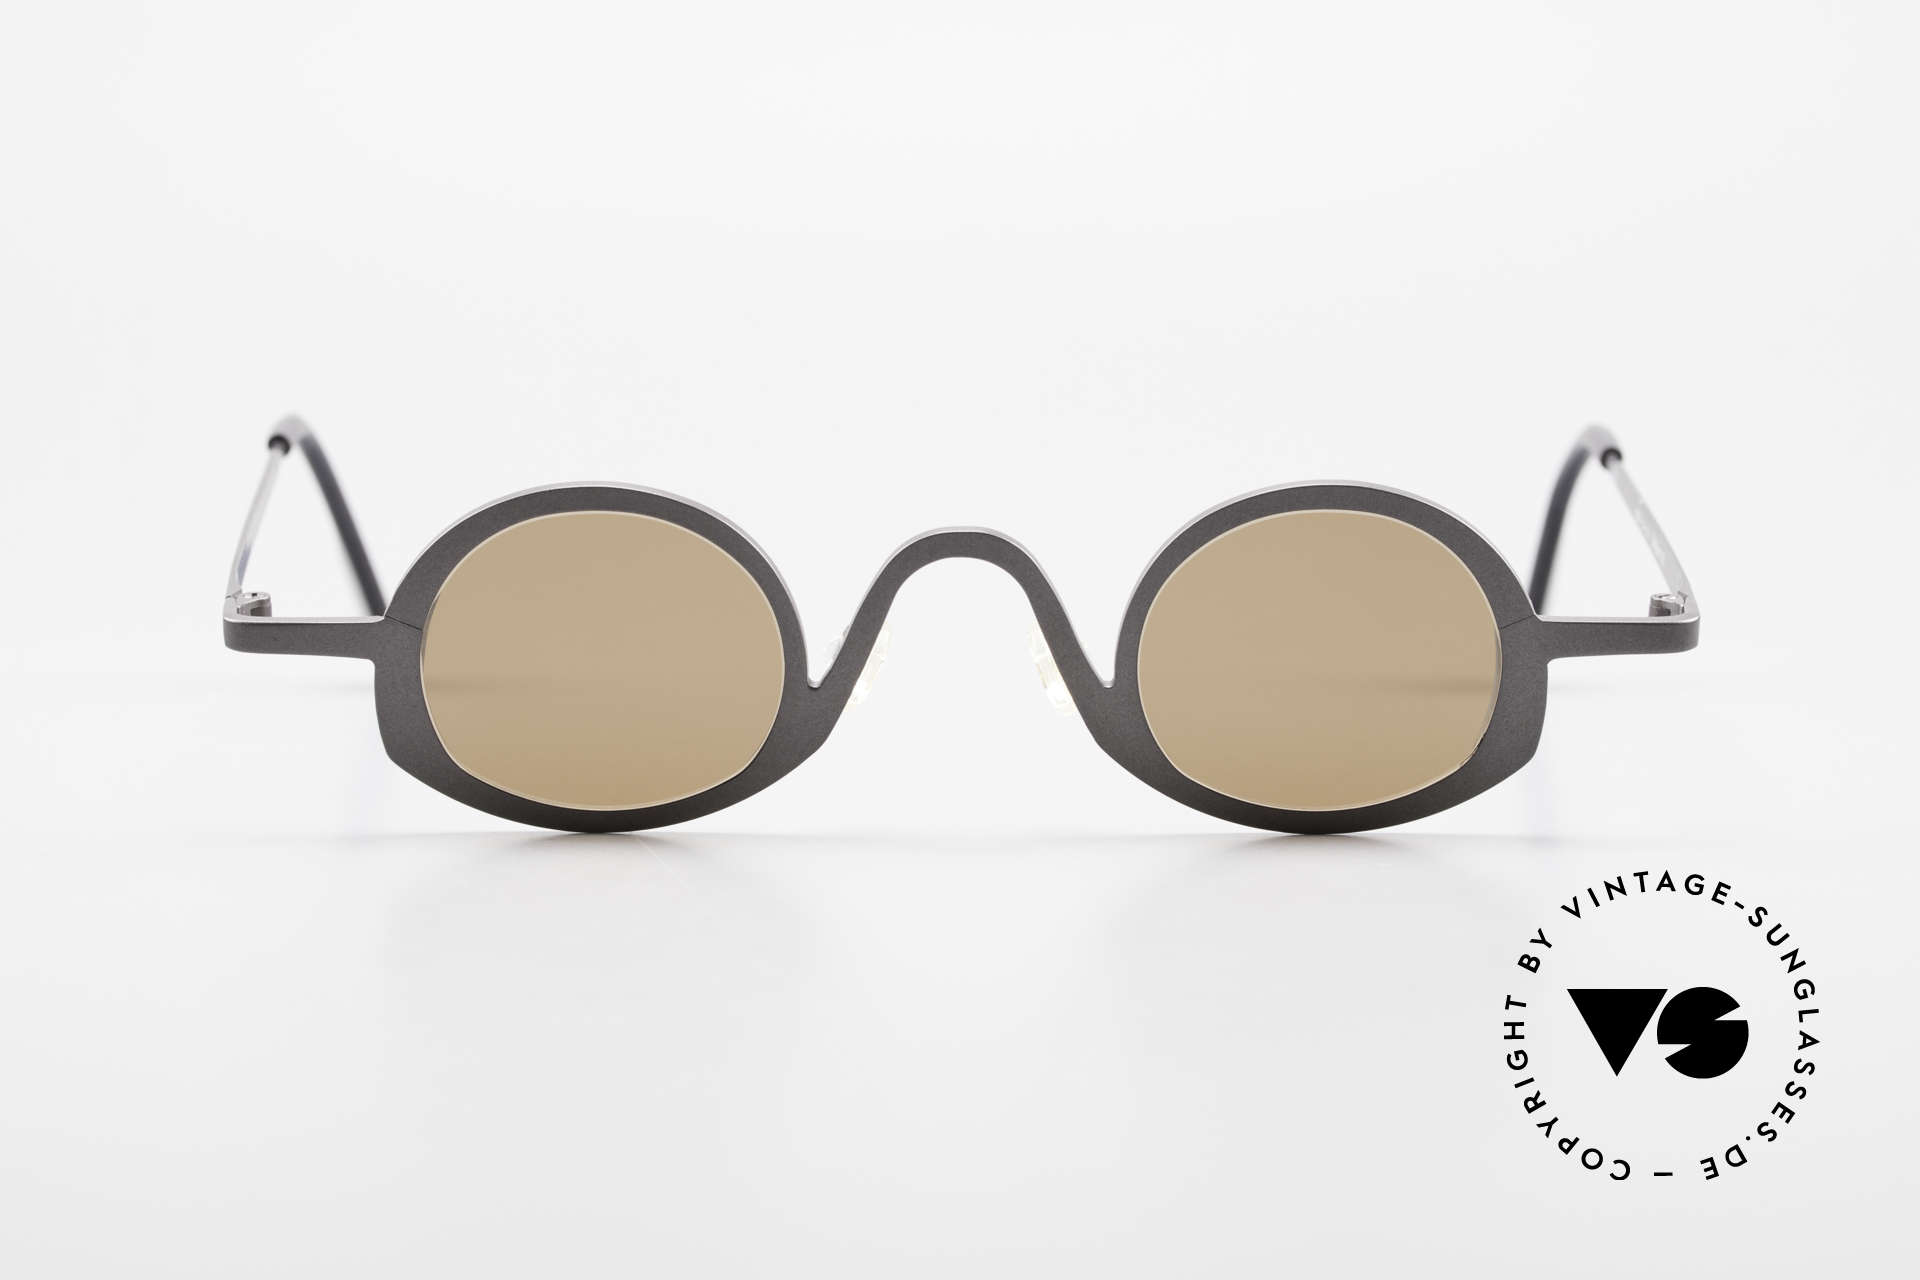 Theo Belgium Circle Avant-Garde Sunglasses 90's, founded in 1989 as 'opposite pole' to the 'mainstream', Made for Men and Women